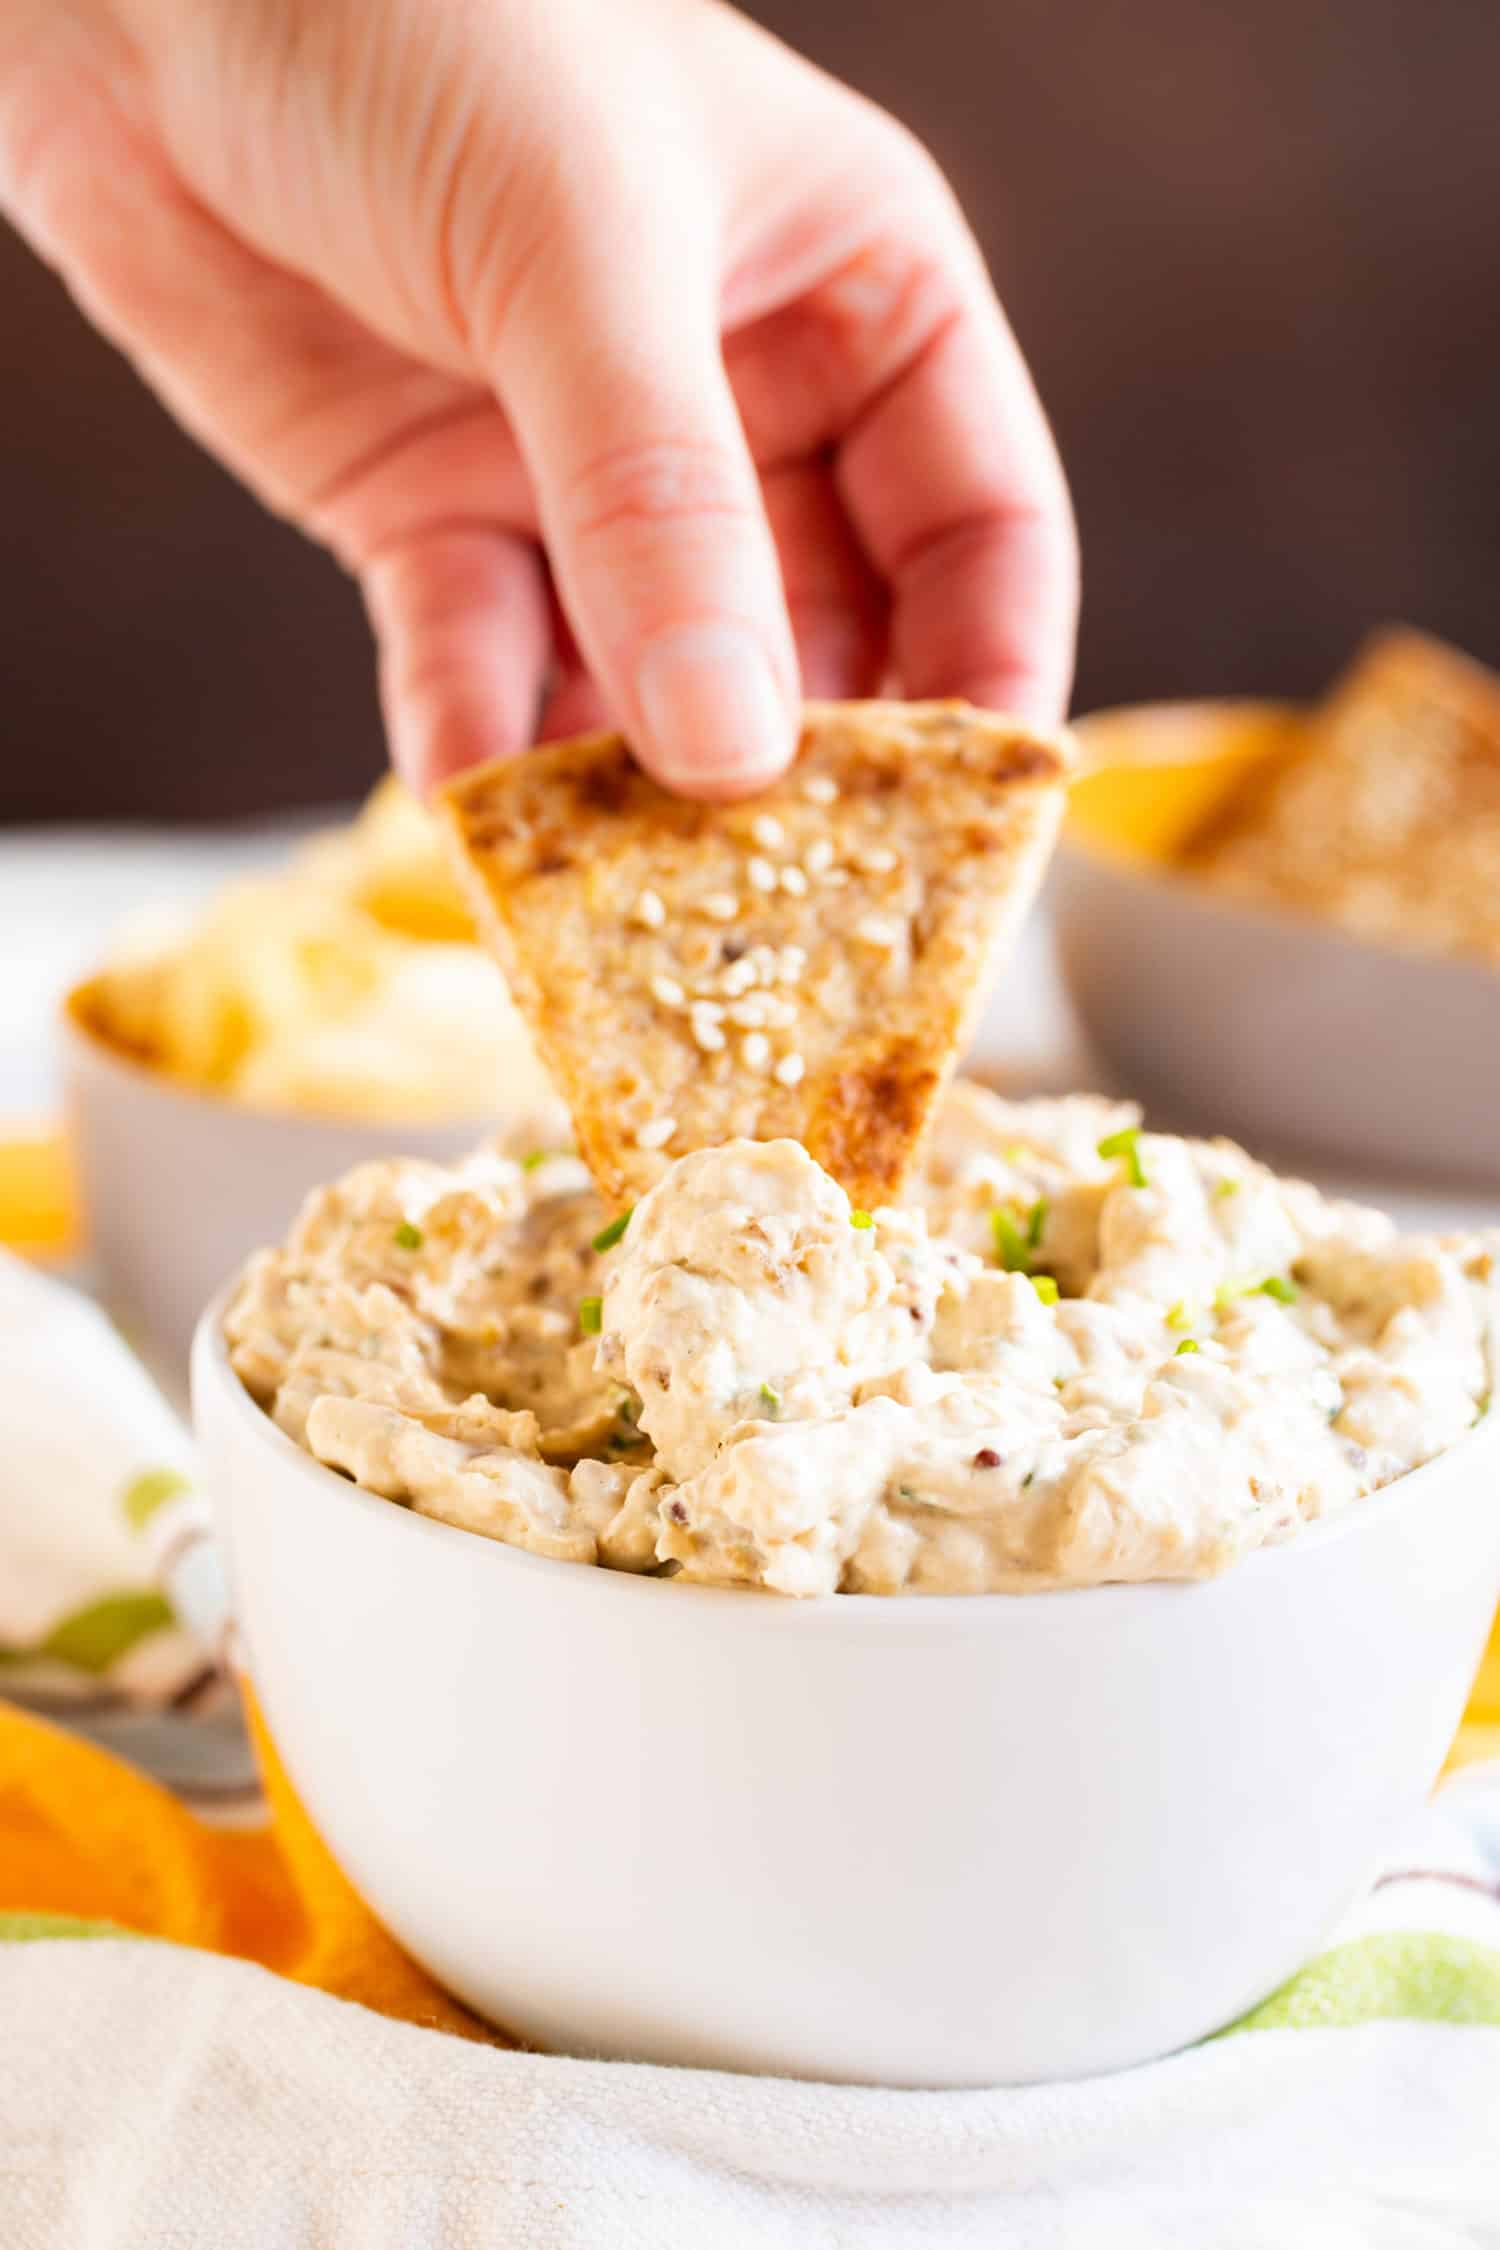 Ramped-Up French Onion Dip